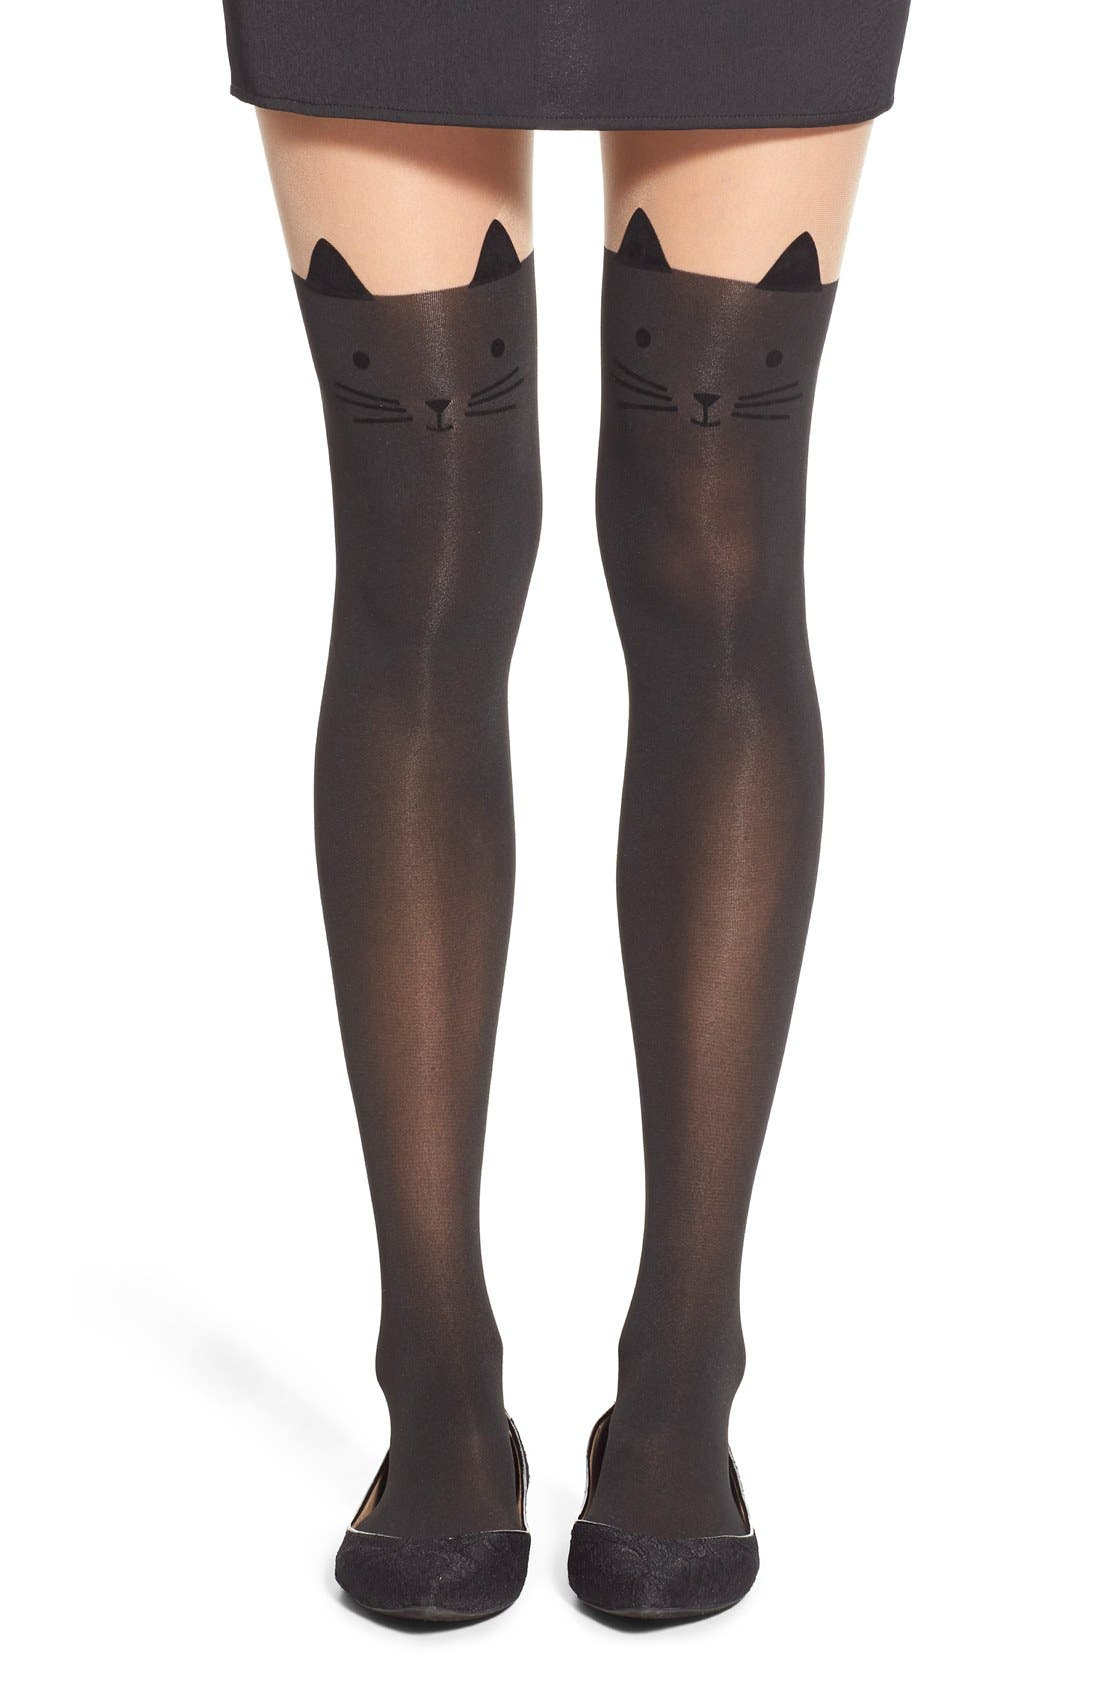 Main Image - Capelli of New York 'Cat Face' Over the Knee Stockings